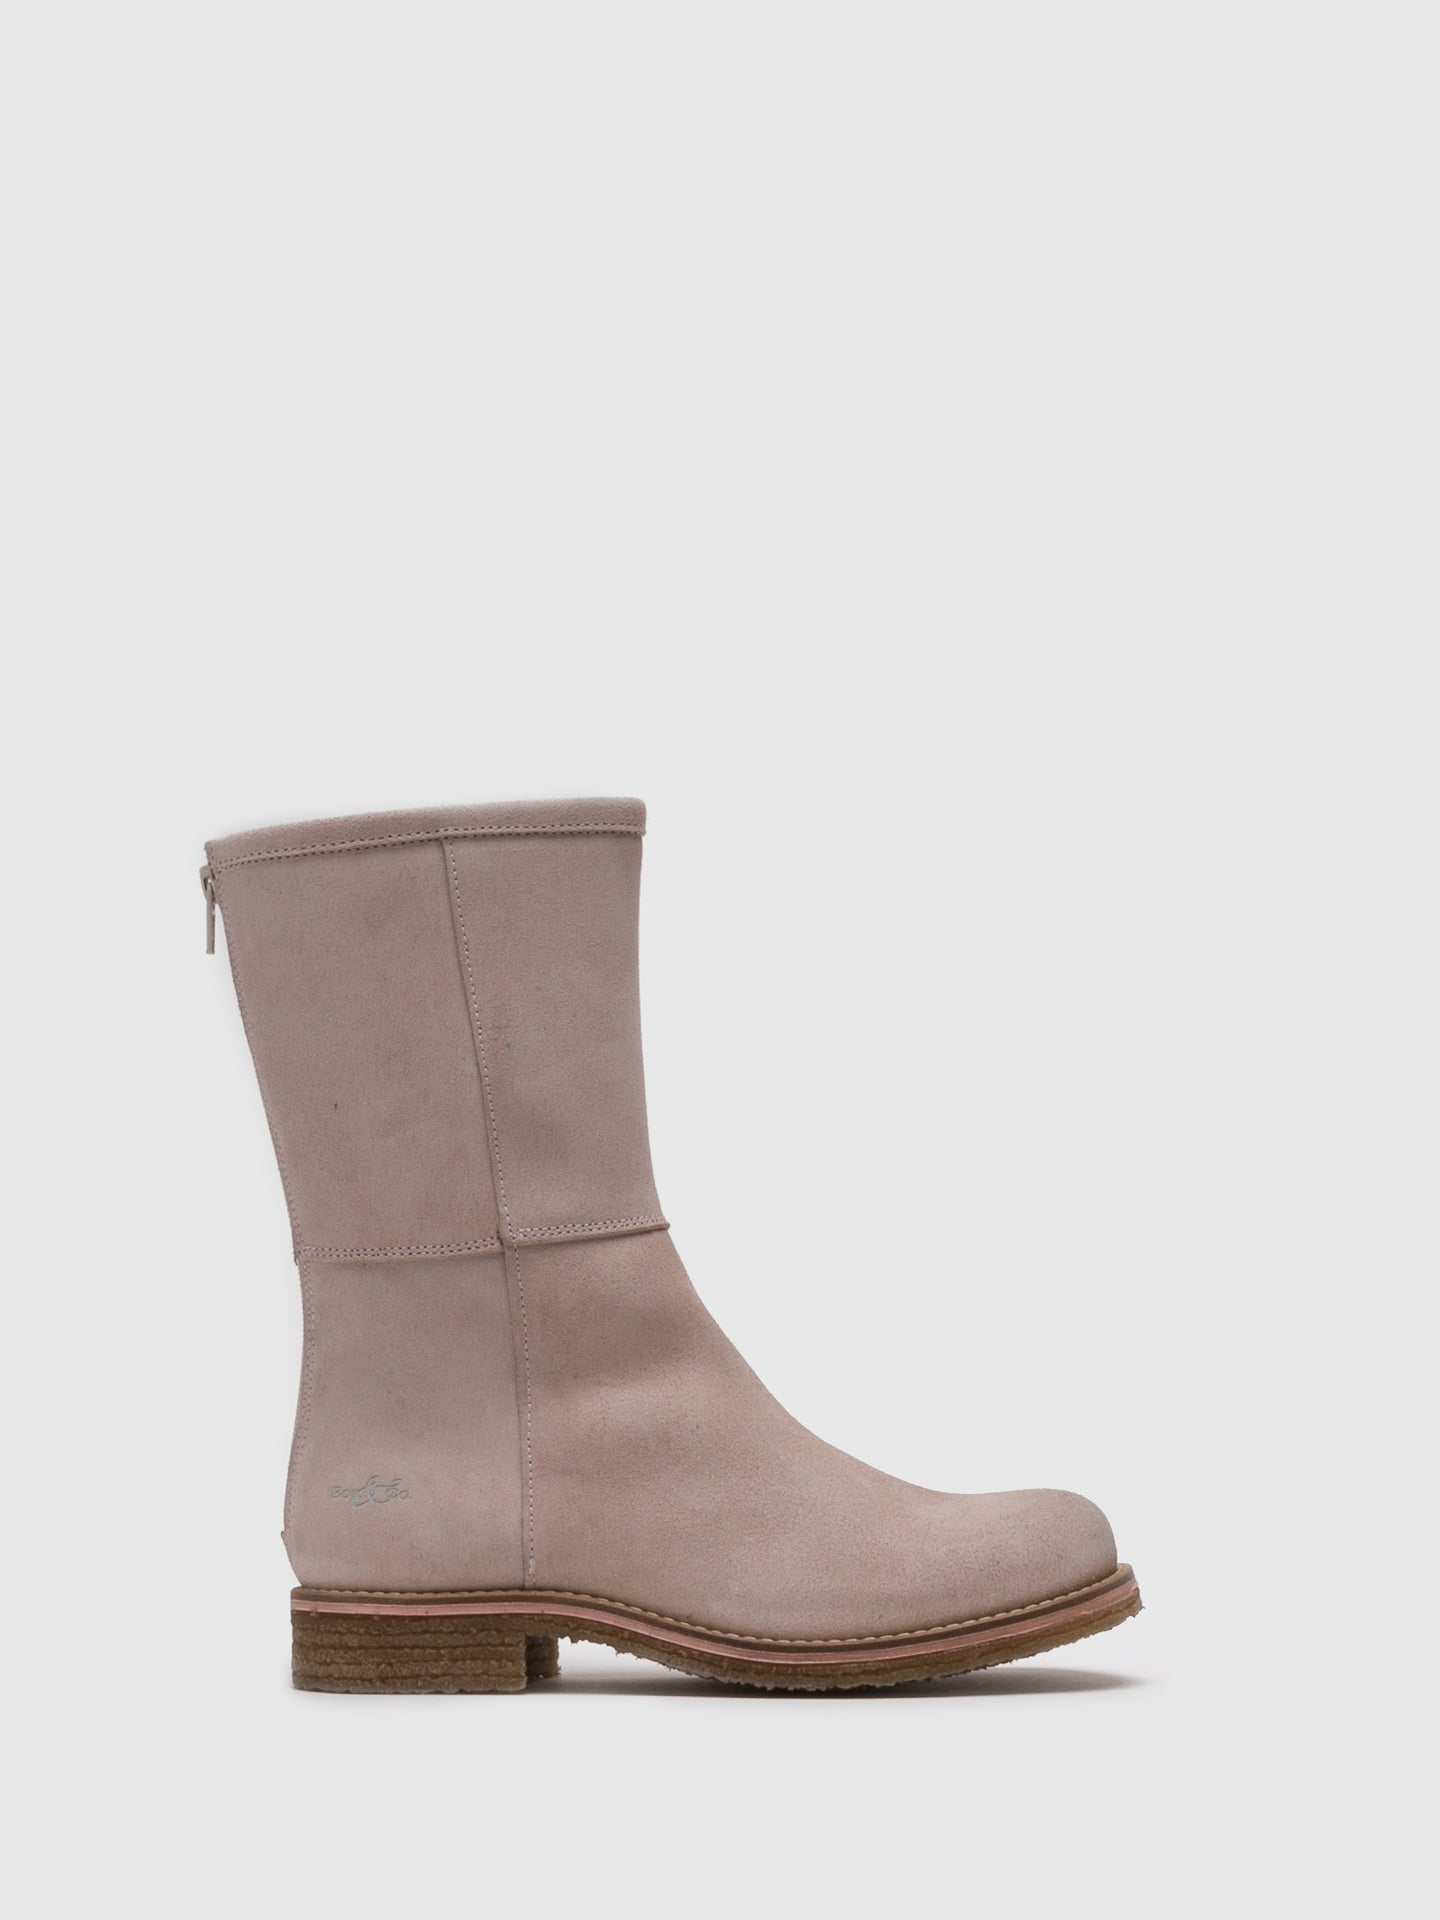 Bos&Co Pink Zip Up Boots